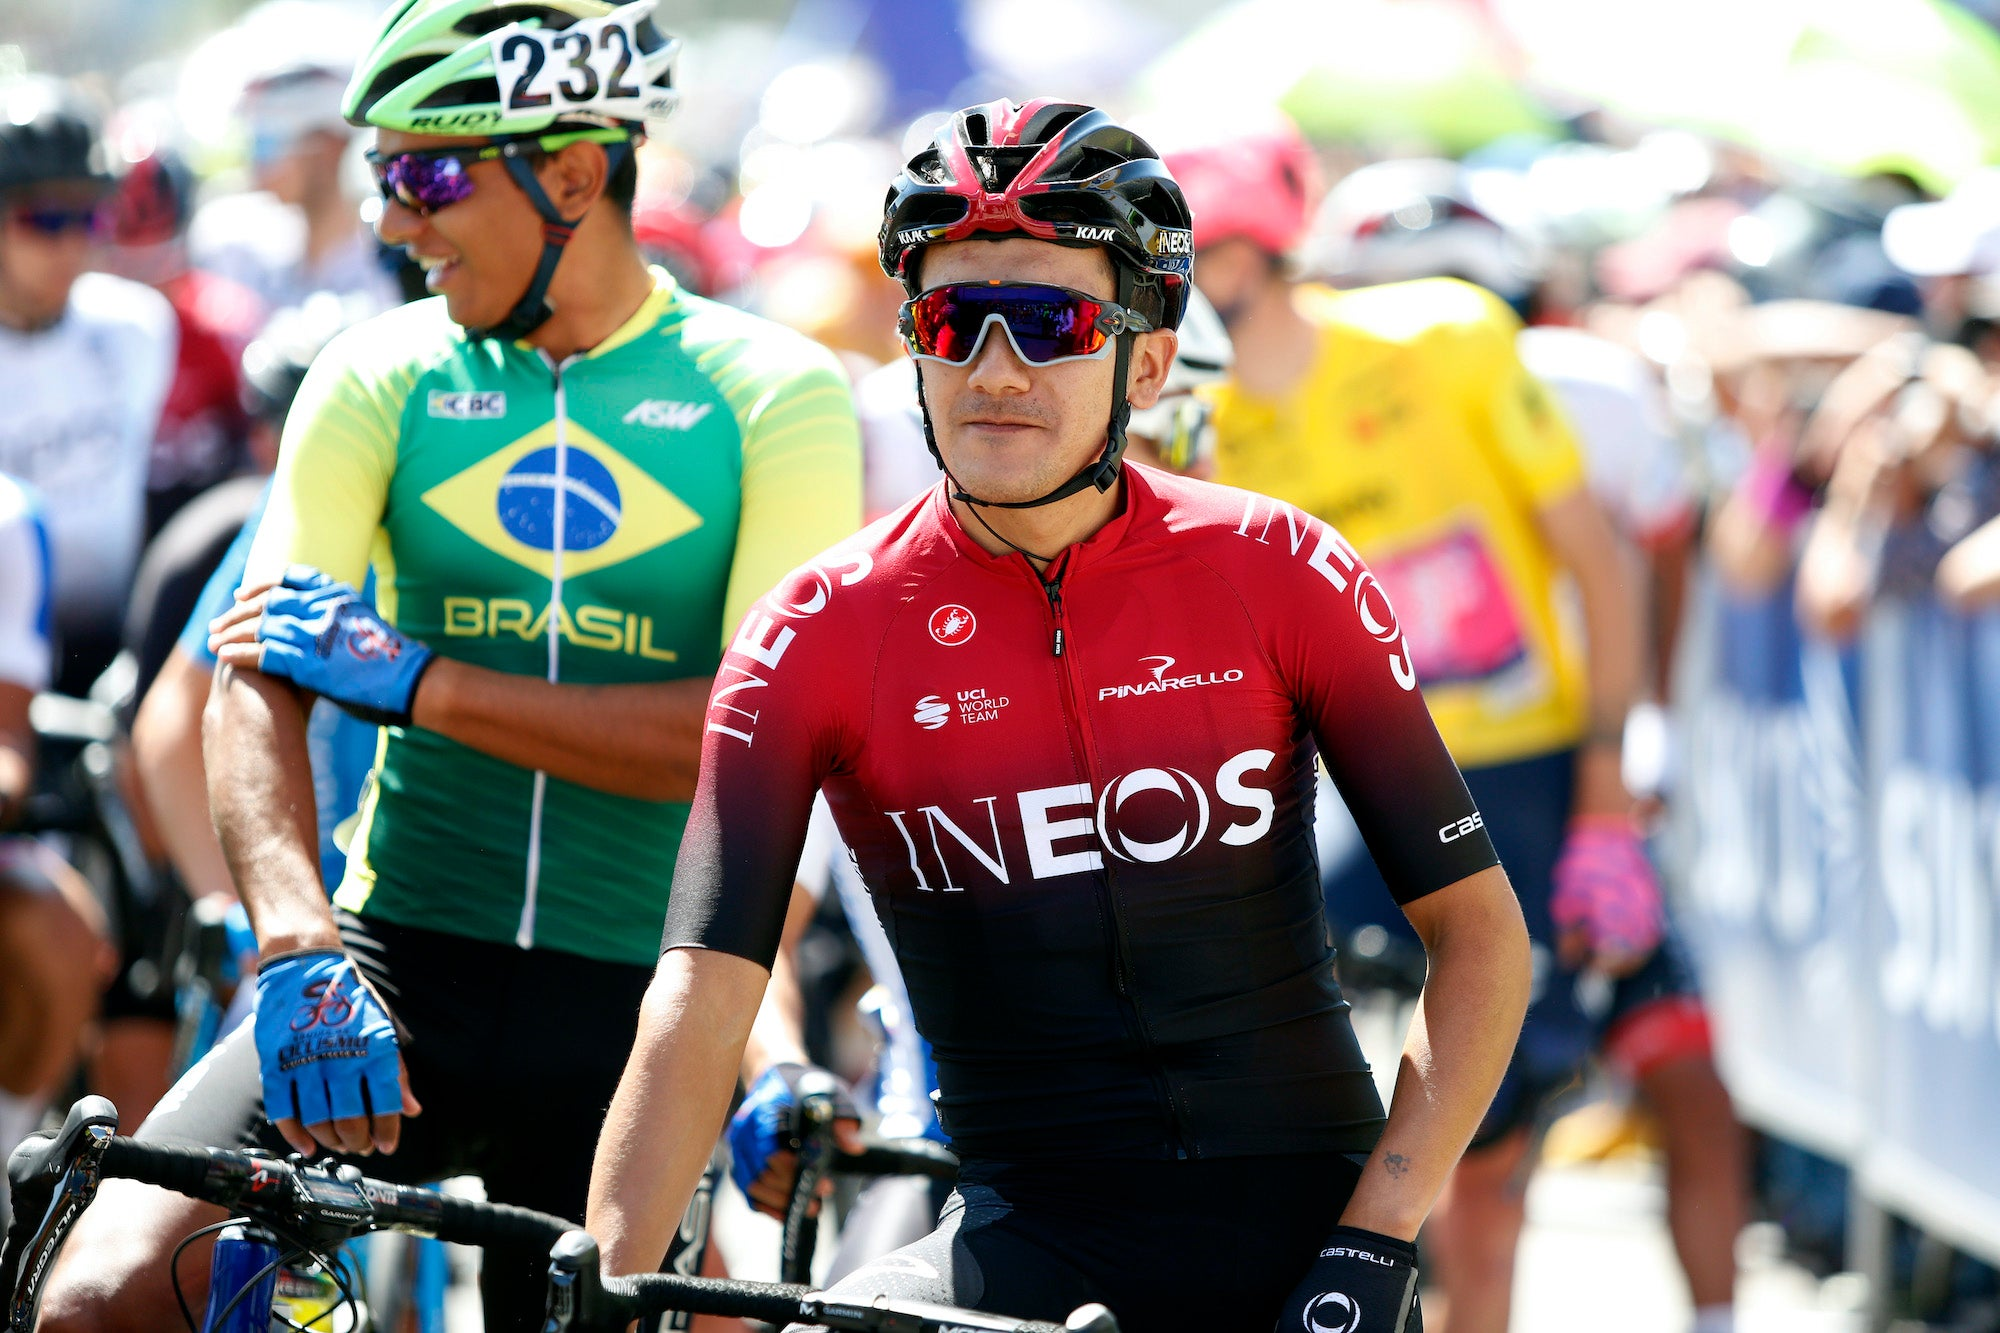 Tour of Poland stage 3: Richard Carapaz opens early sprint, holds off field for stunning win – VeloNews.com